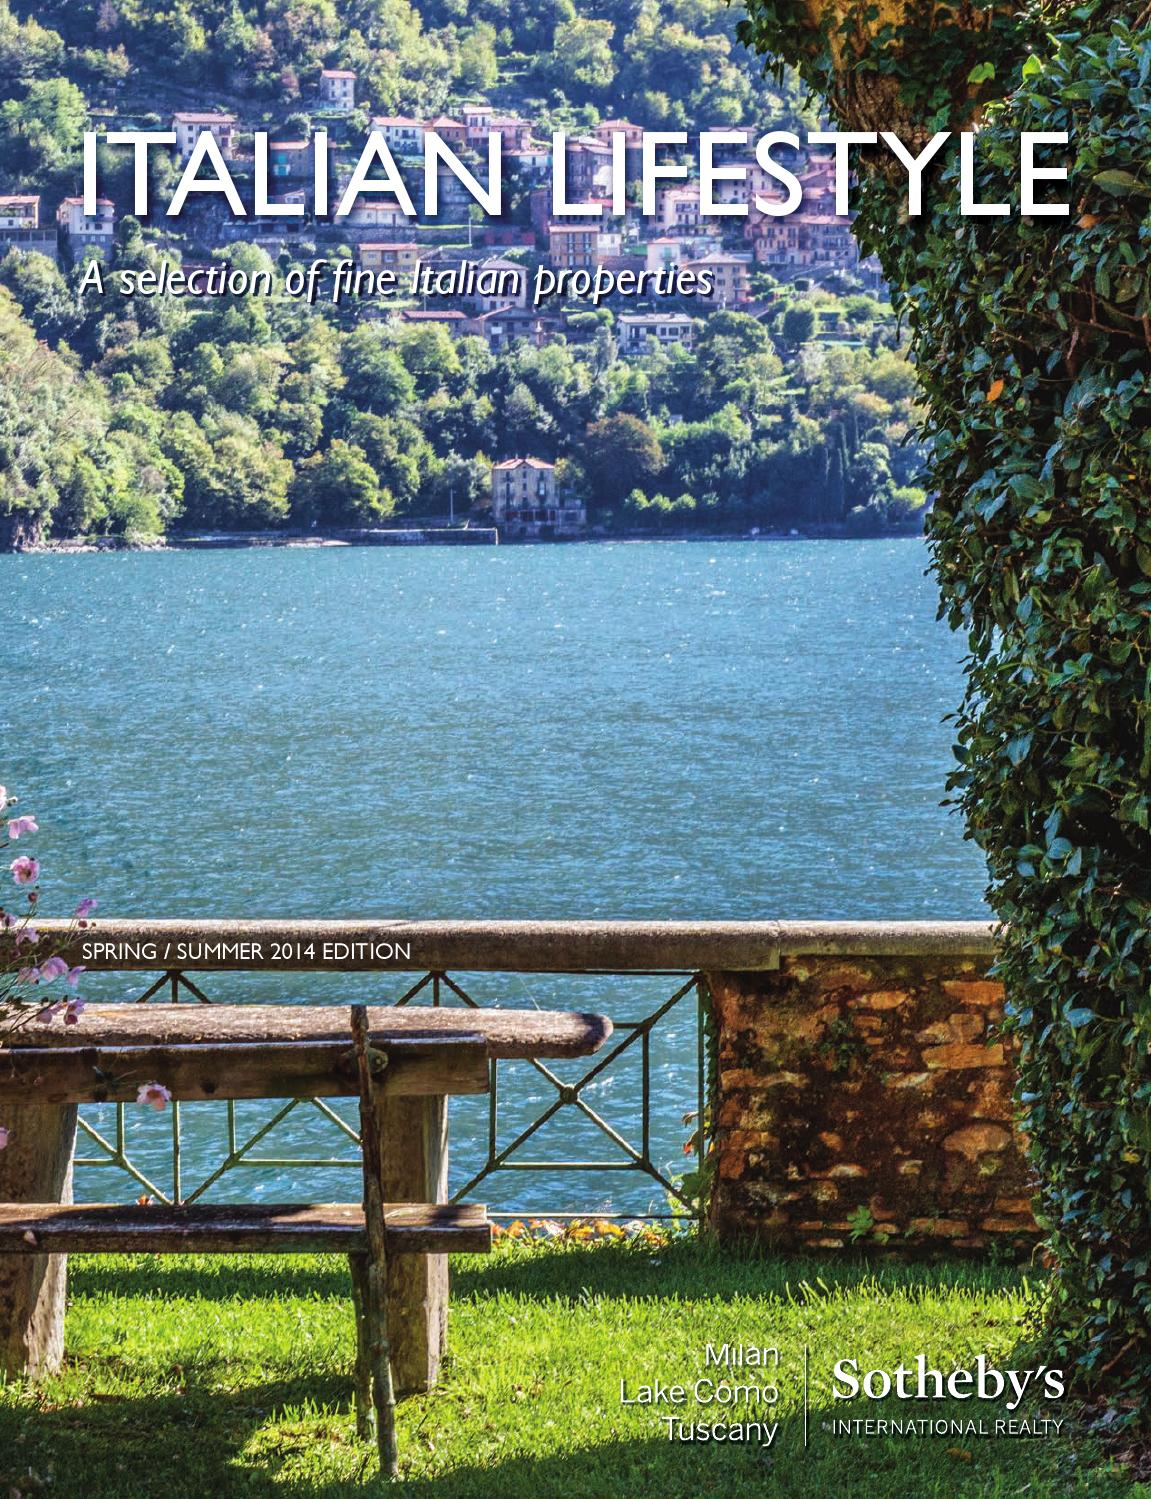 Issuu italian lifestyle ss 2014 by milan sotheby 39 s - Tuscany sotheby s international realty ...